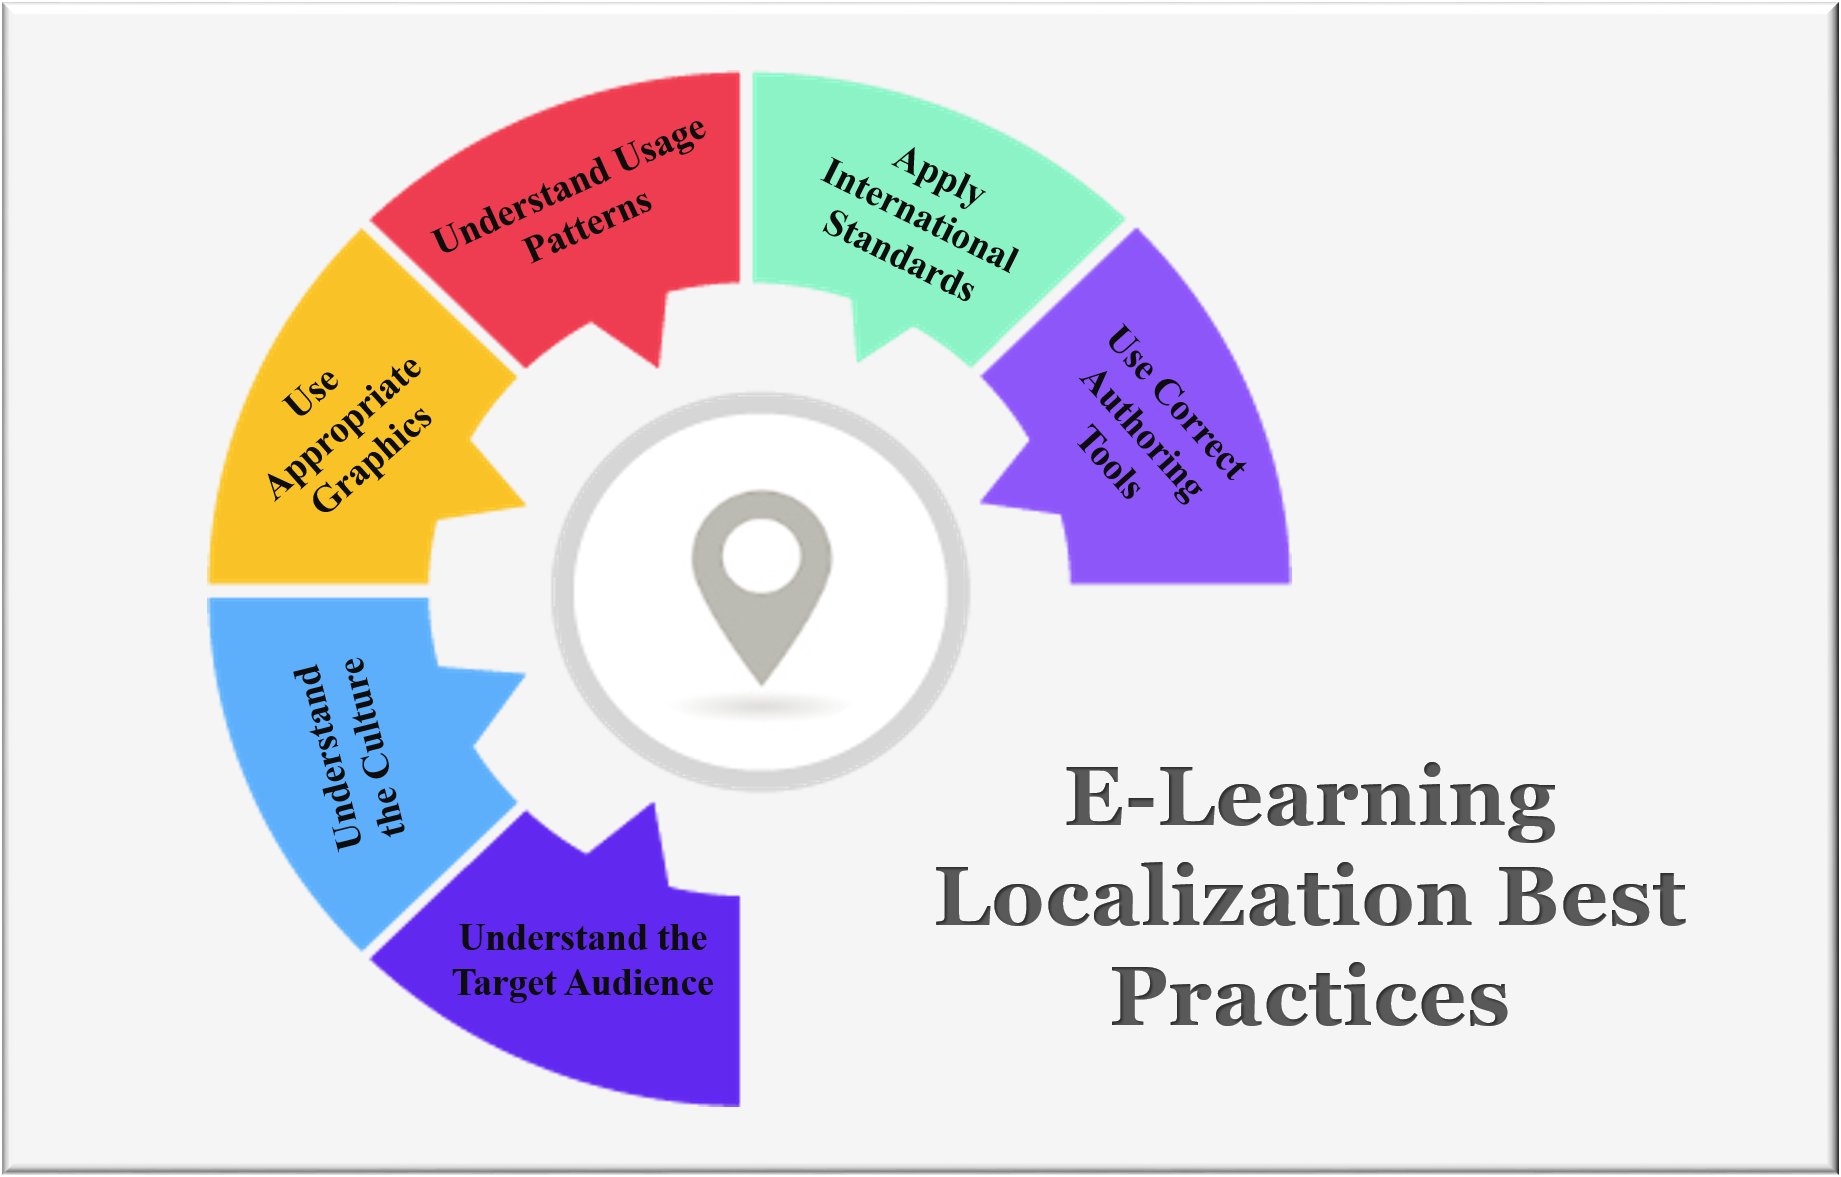 E-Learning Localization Best Practices